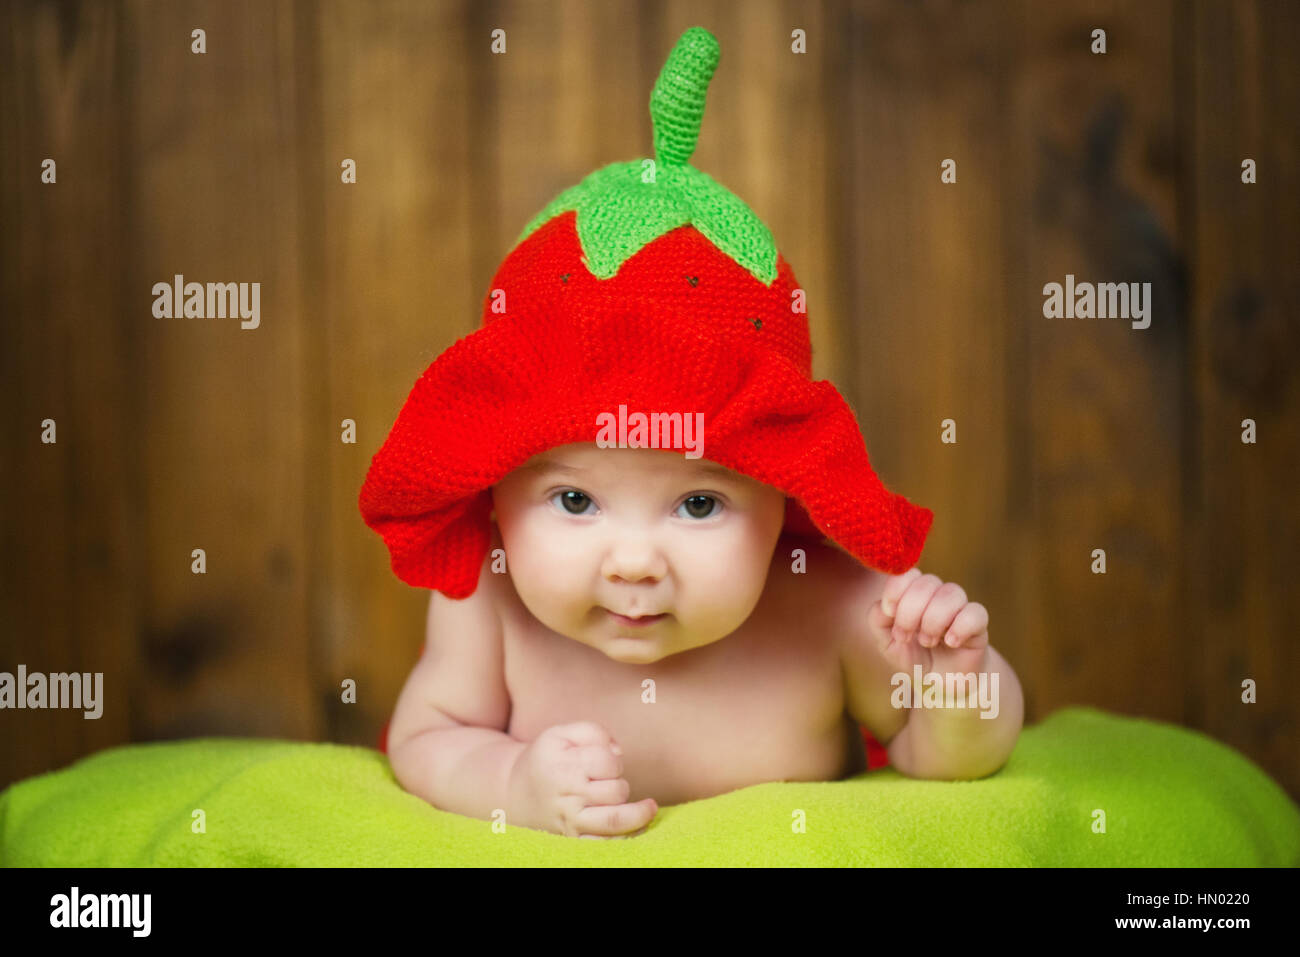 beautiful baby girl in a knitted hat strawberry stock photo